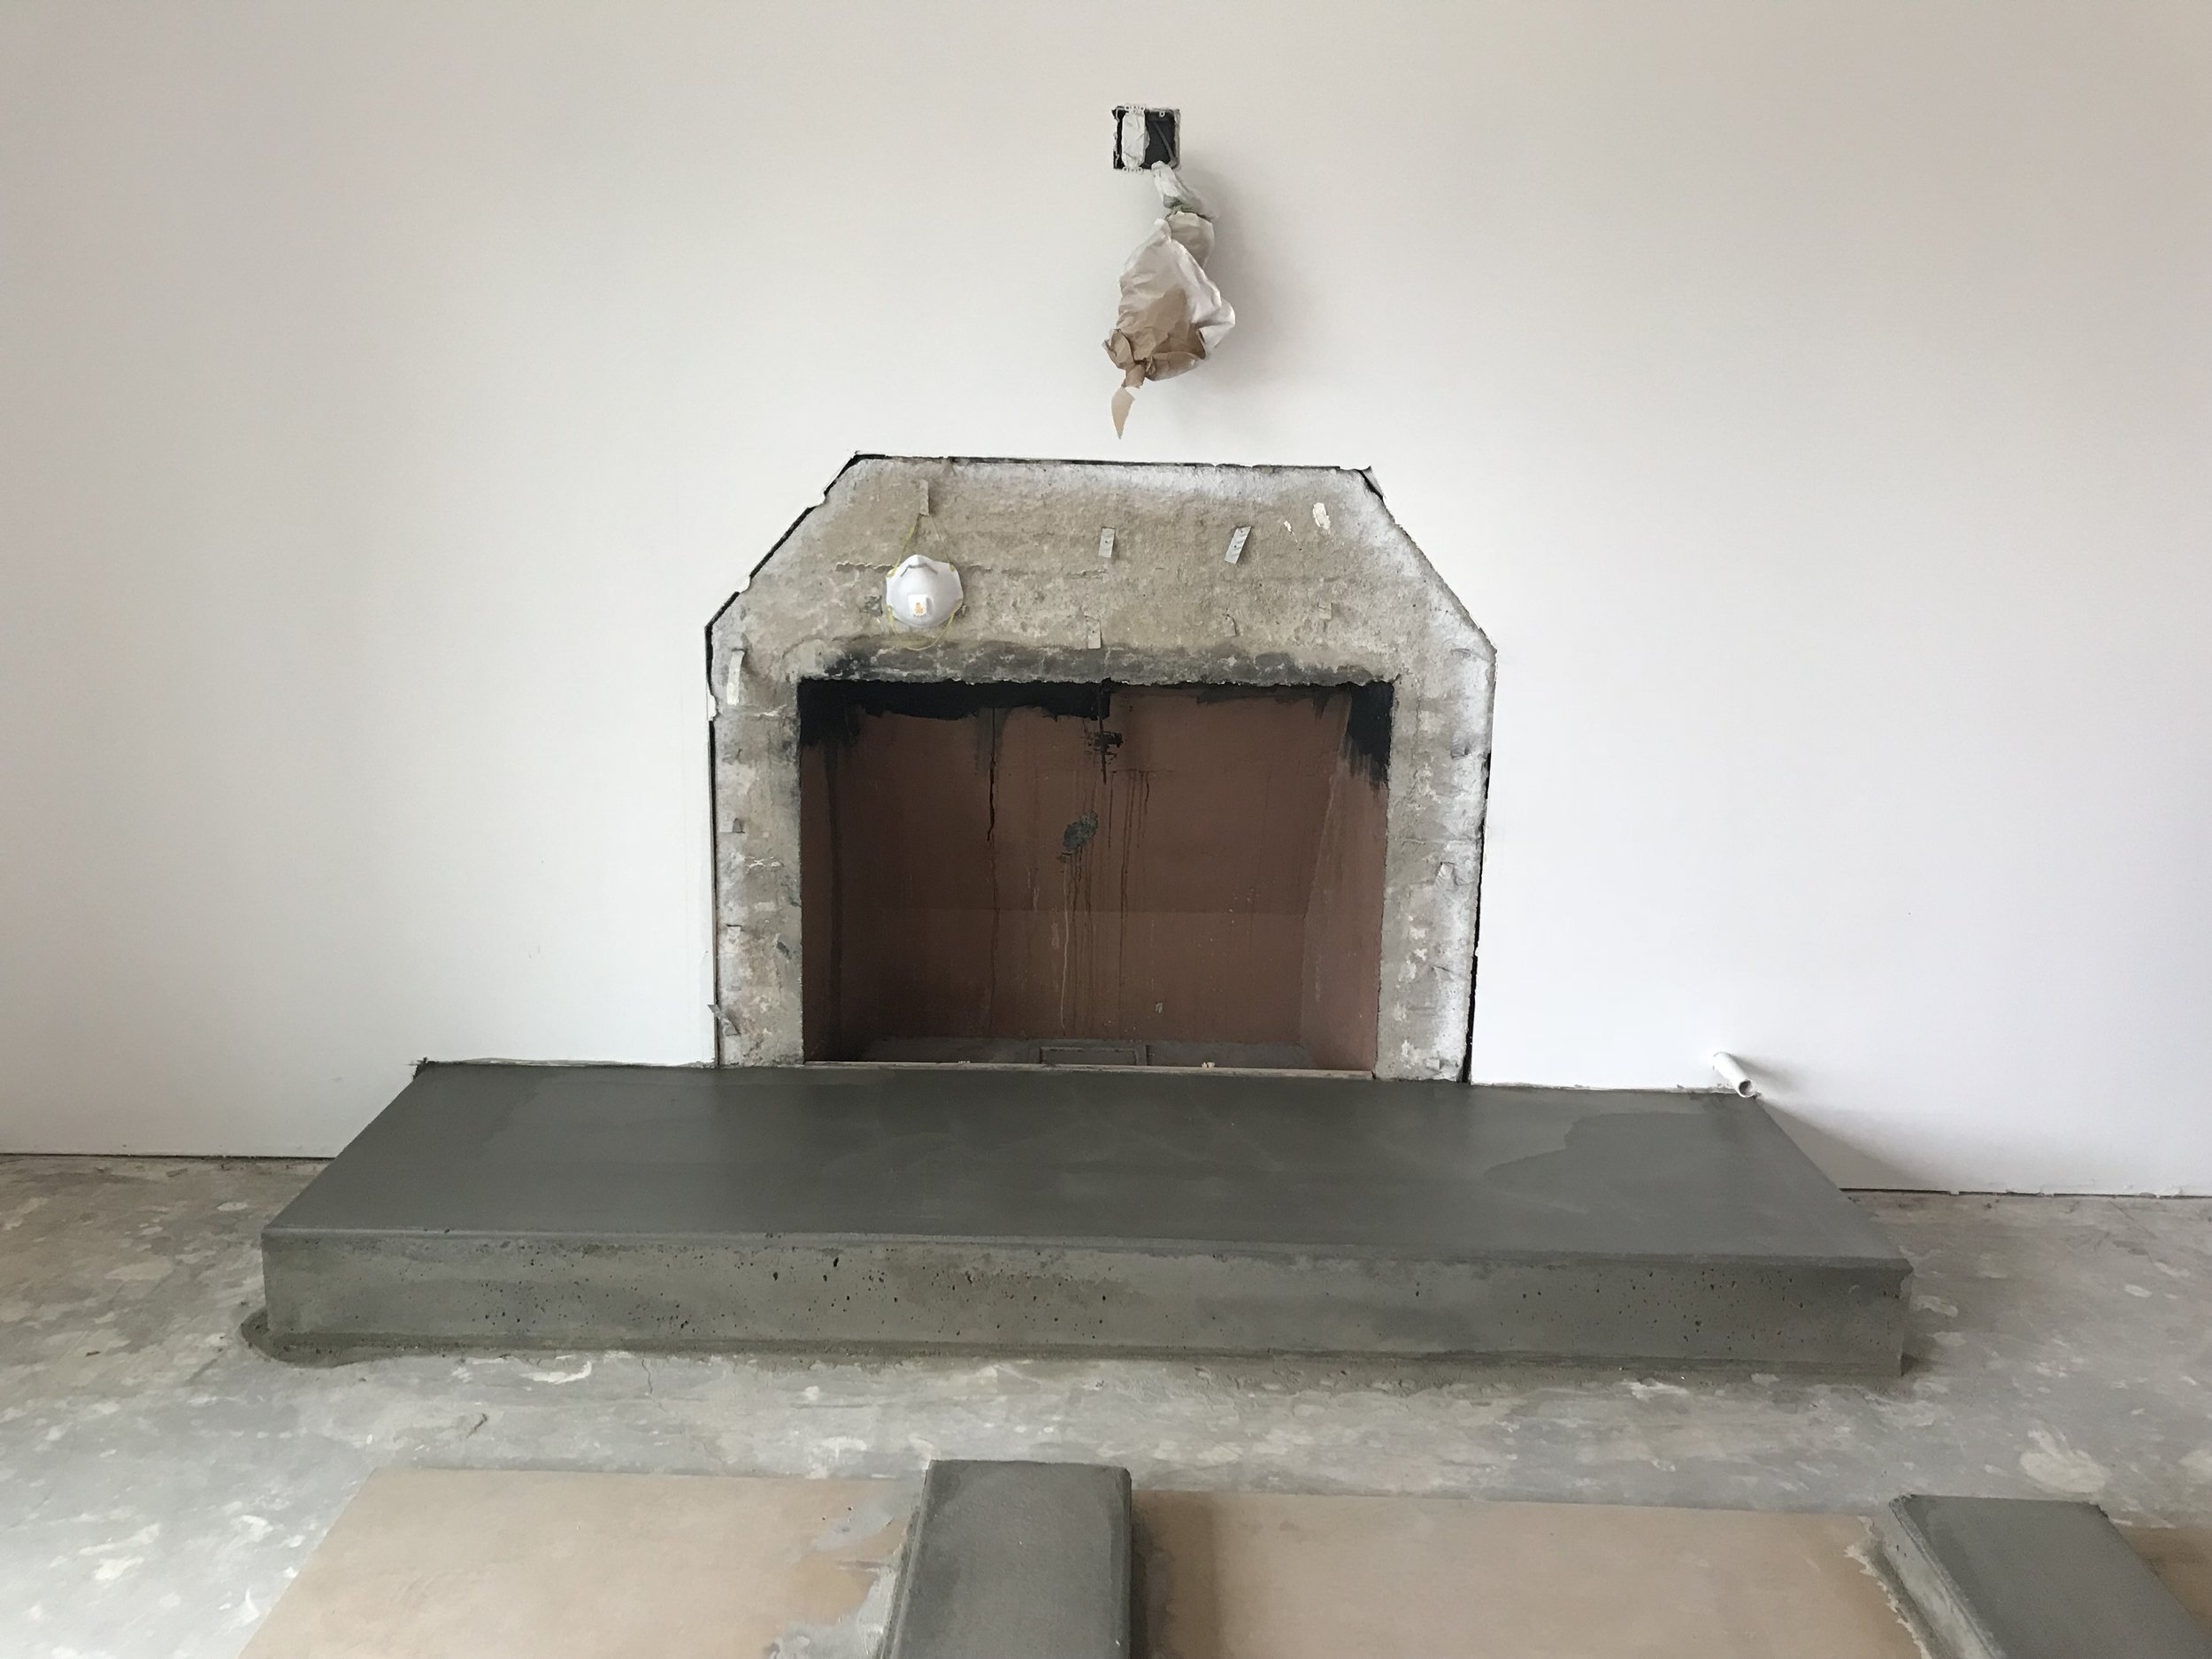 The mold is carefully removed and the concrete is left alone to dry.